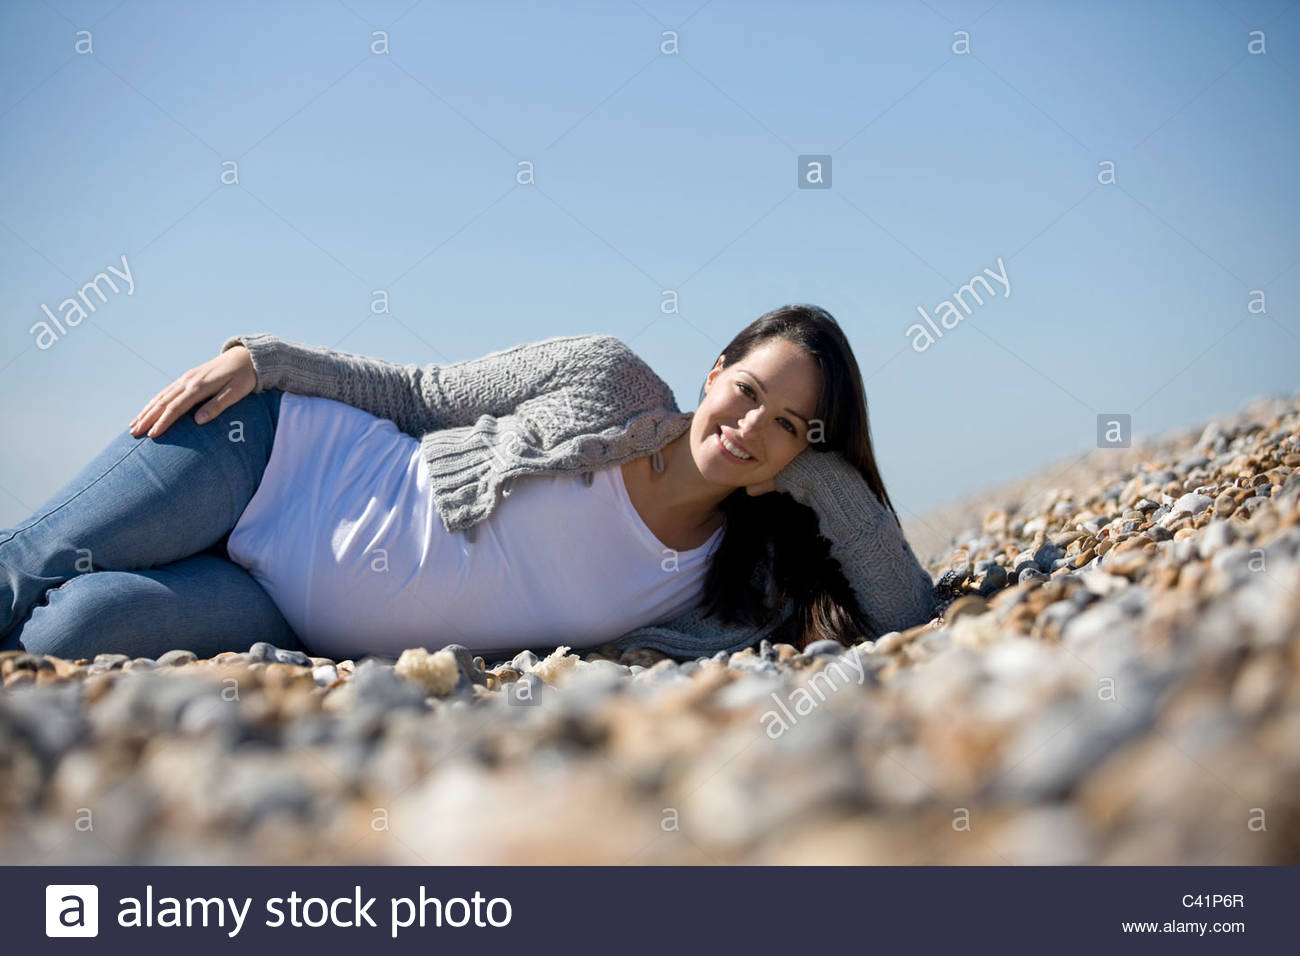 A pregnant woman lying on the beach, smiling - Stock Image